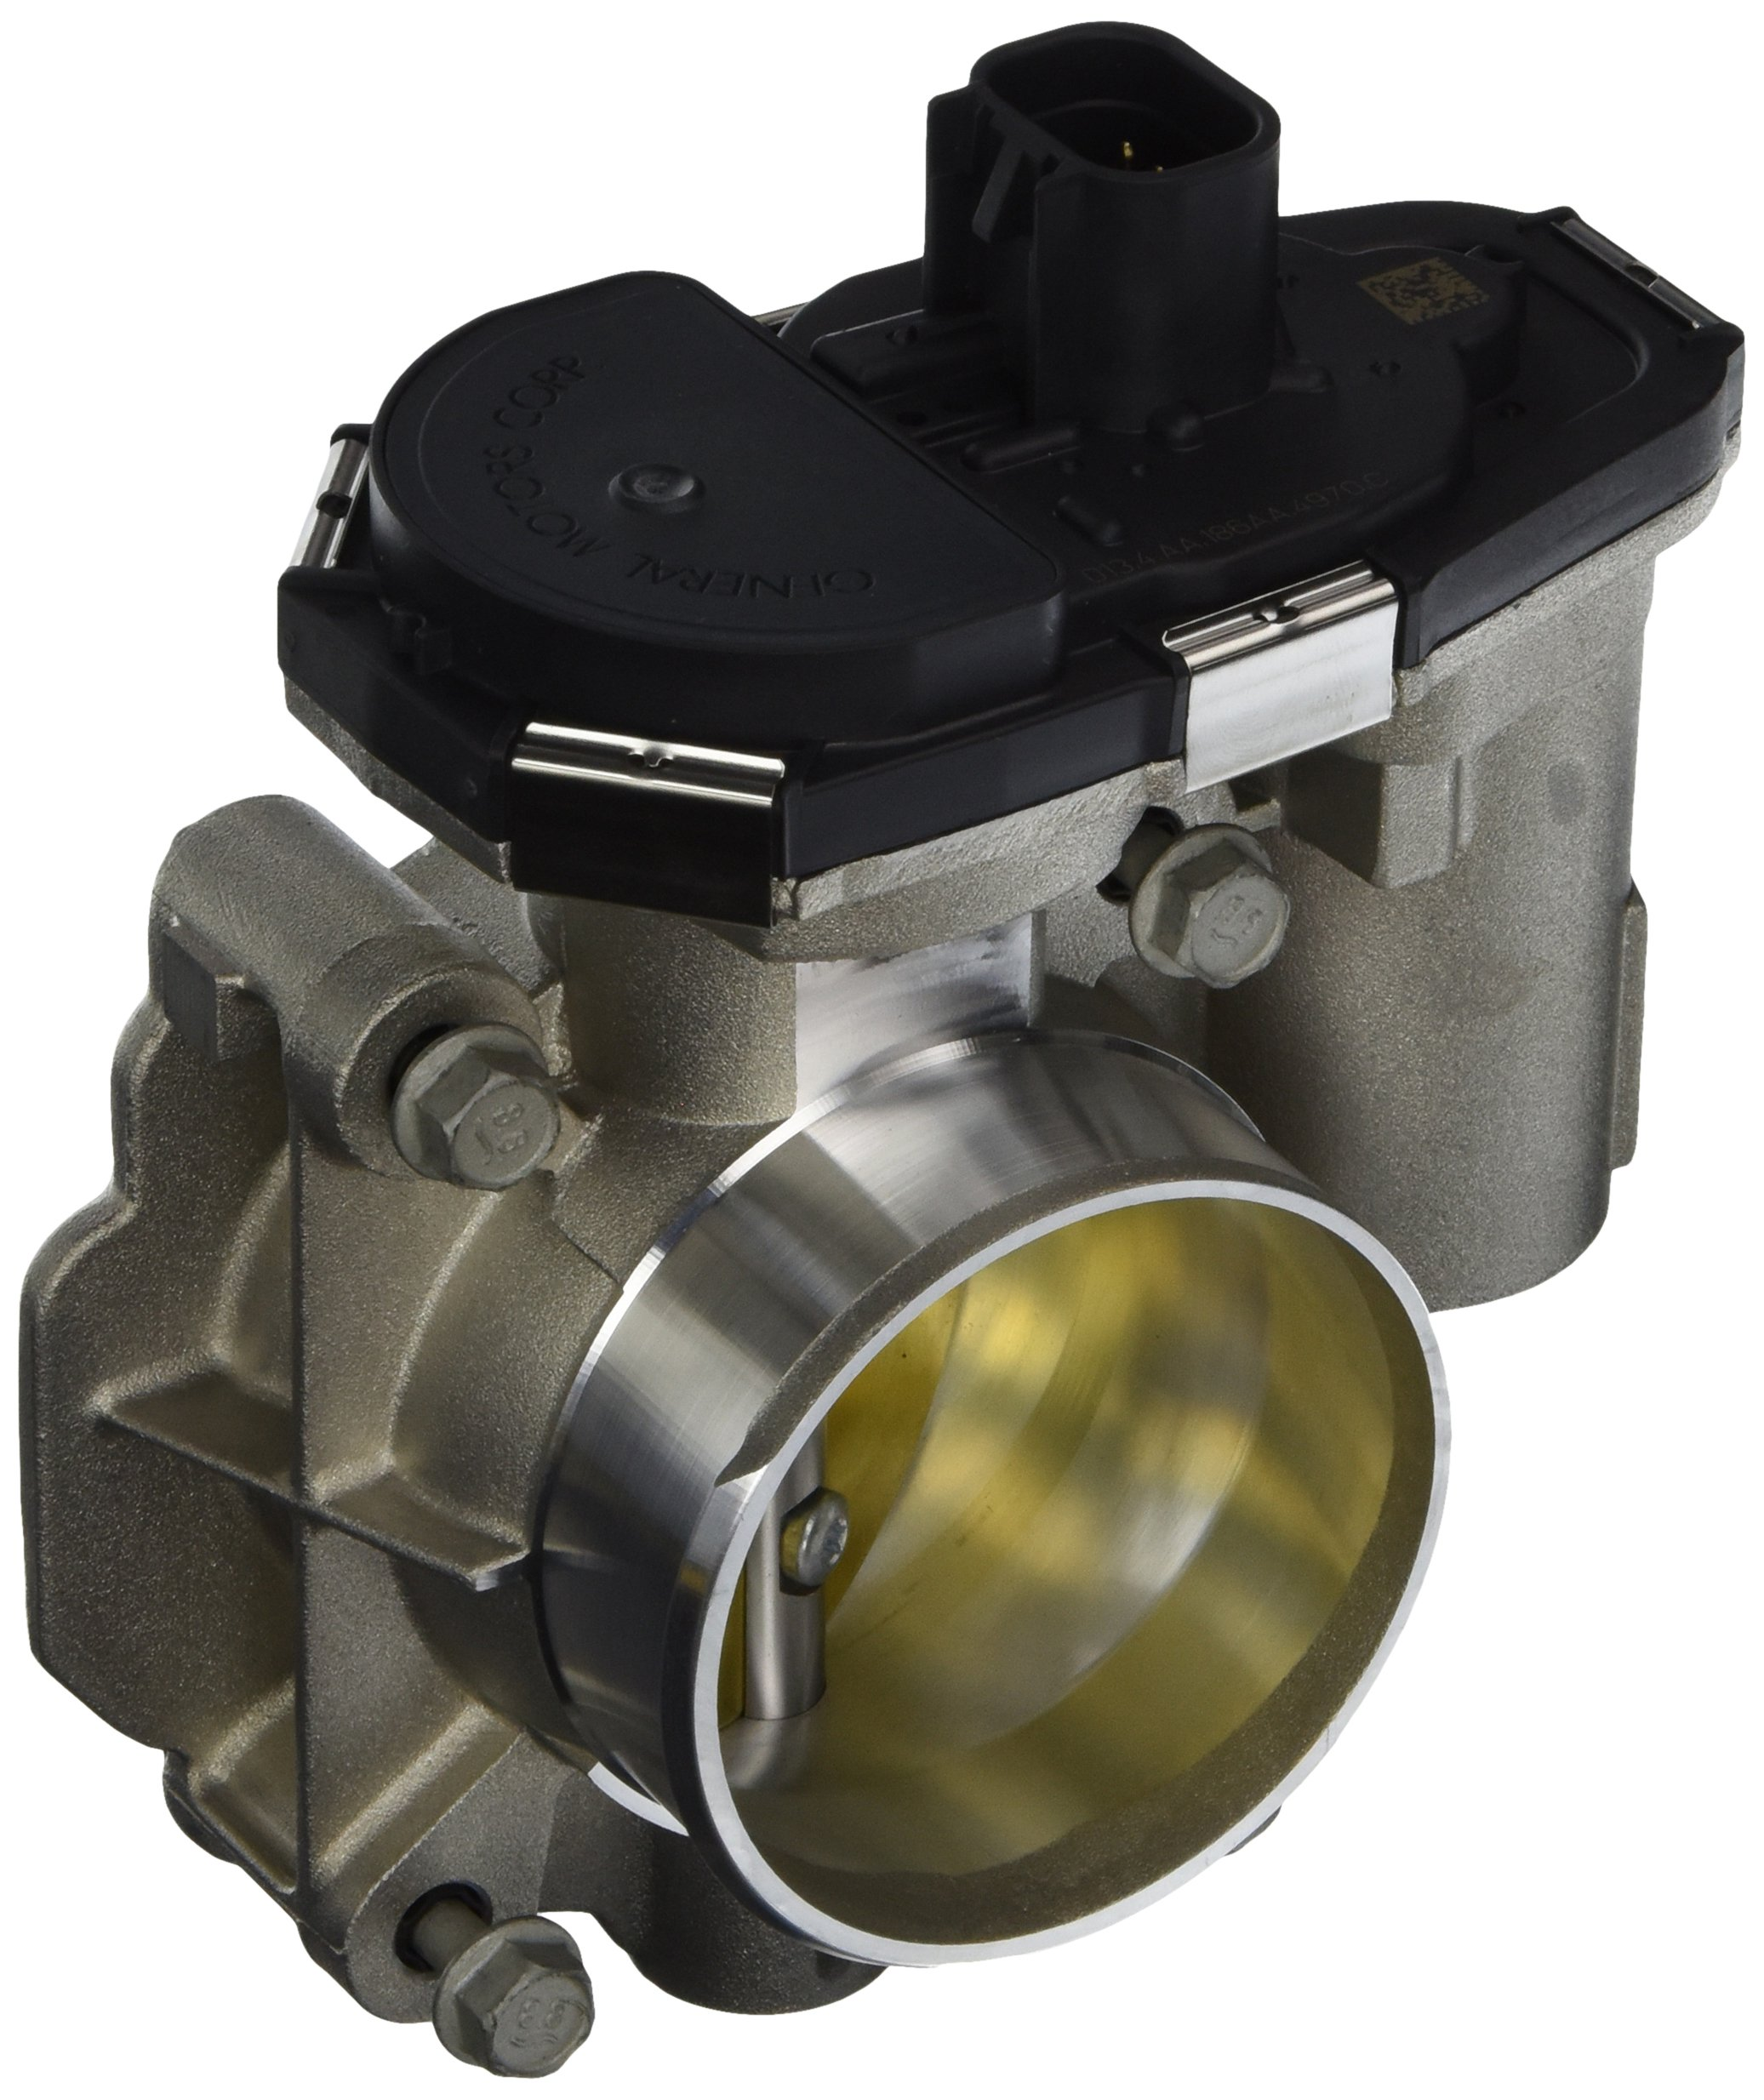 ACDelco 217-3428 GM Original Equipment Fuel Injection Throttle Body with Throttle Actuator by ACDelco